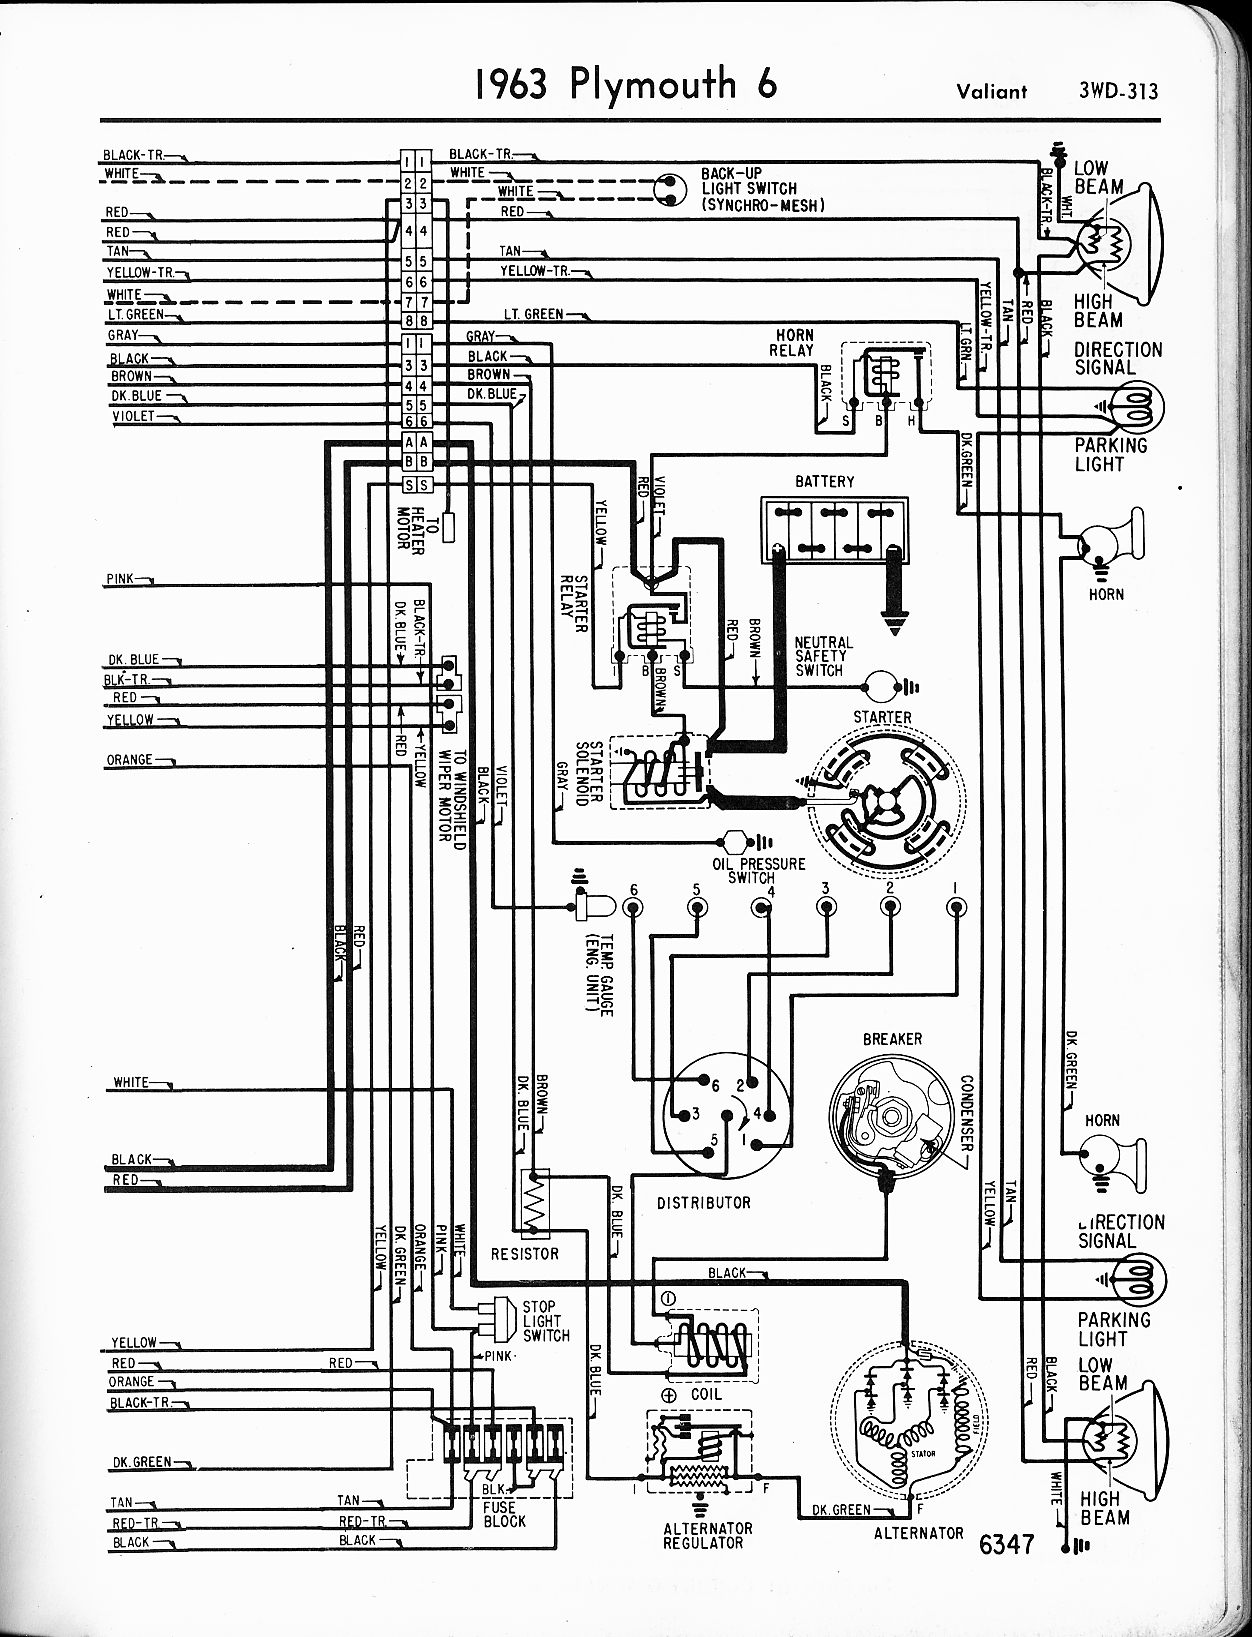 MWire5765 313 1956 1965 plymouth wiring the old car manual project 64 valiant wiring diagram at readyjetset.co